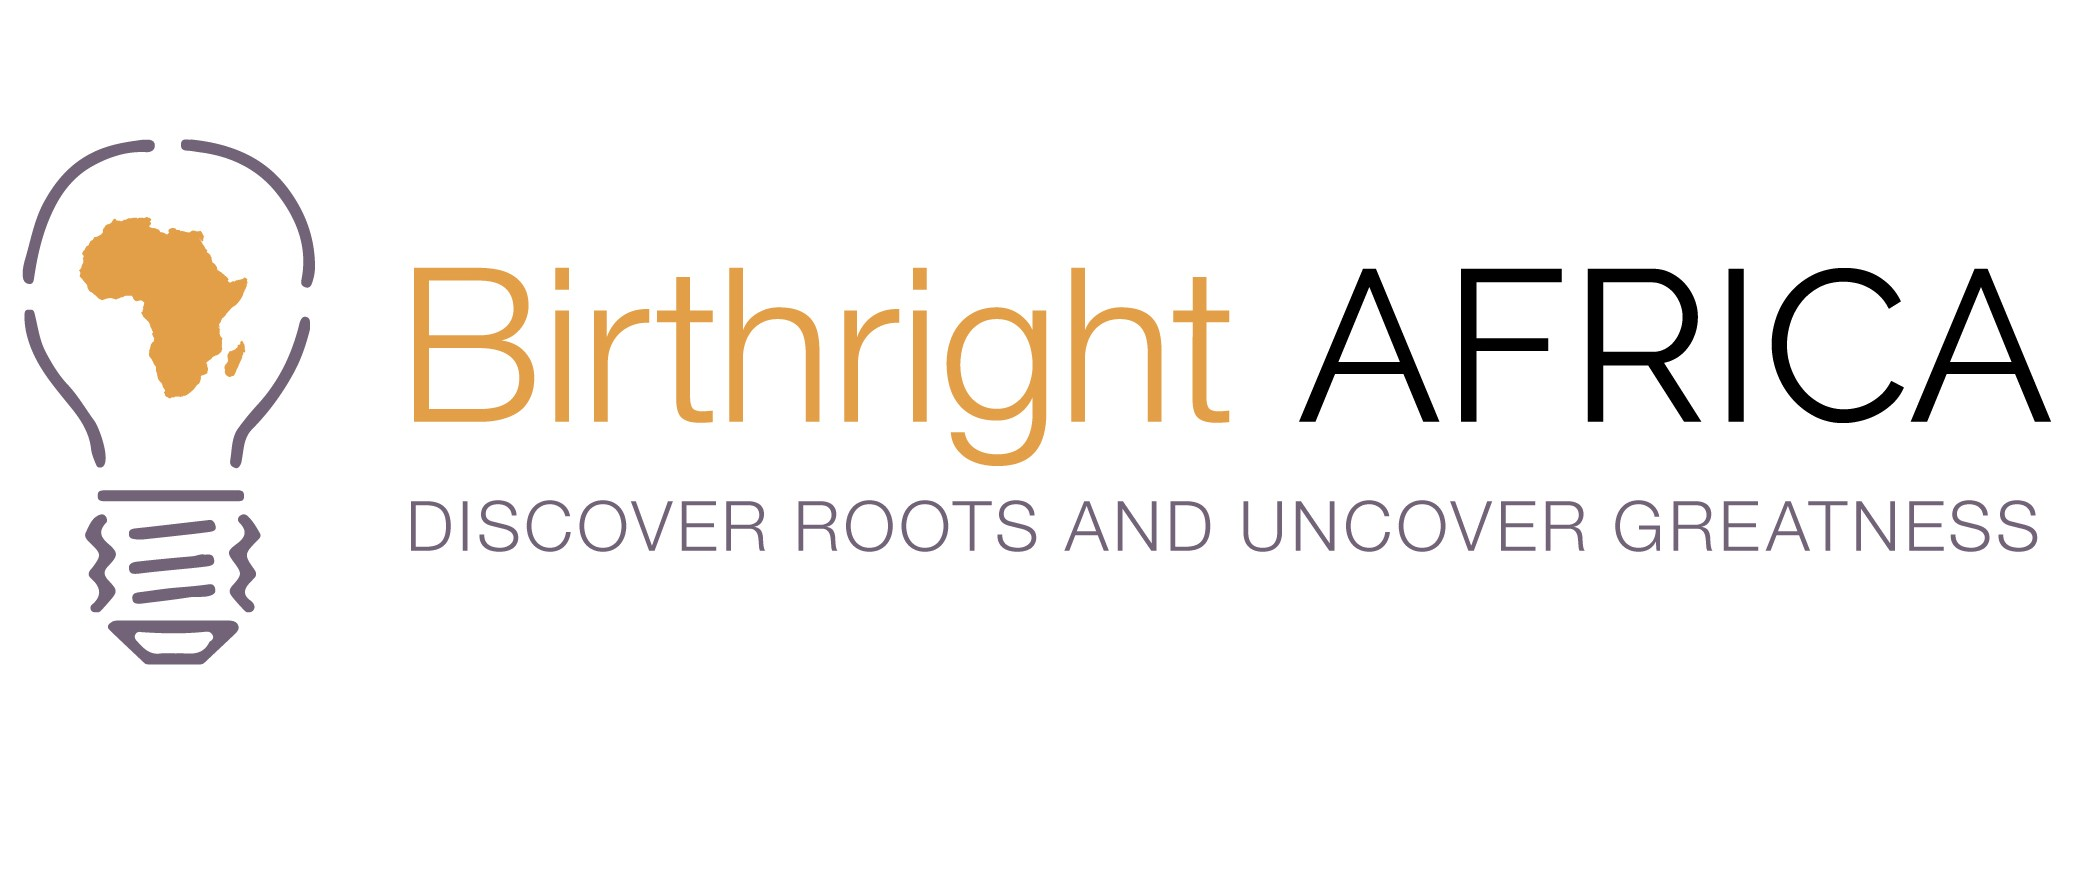 Birthright AFRICA - Transform future generations of the diaspora with a life-changing trip to Africa.